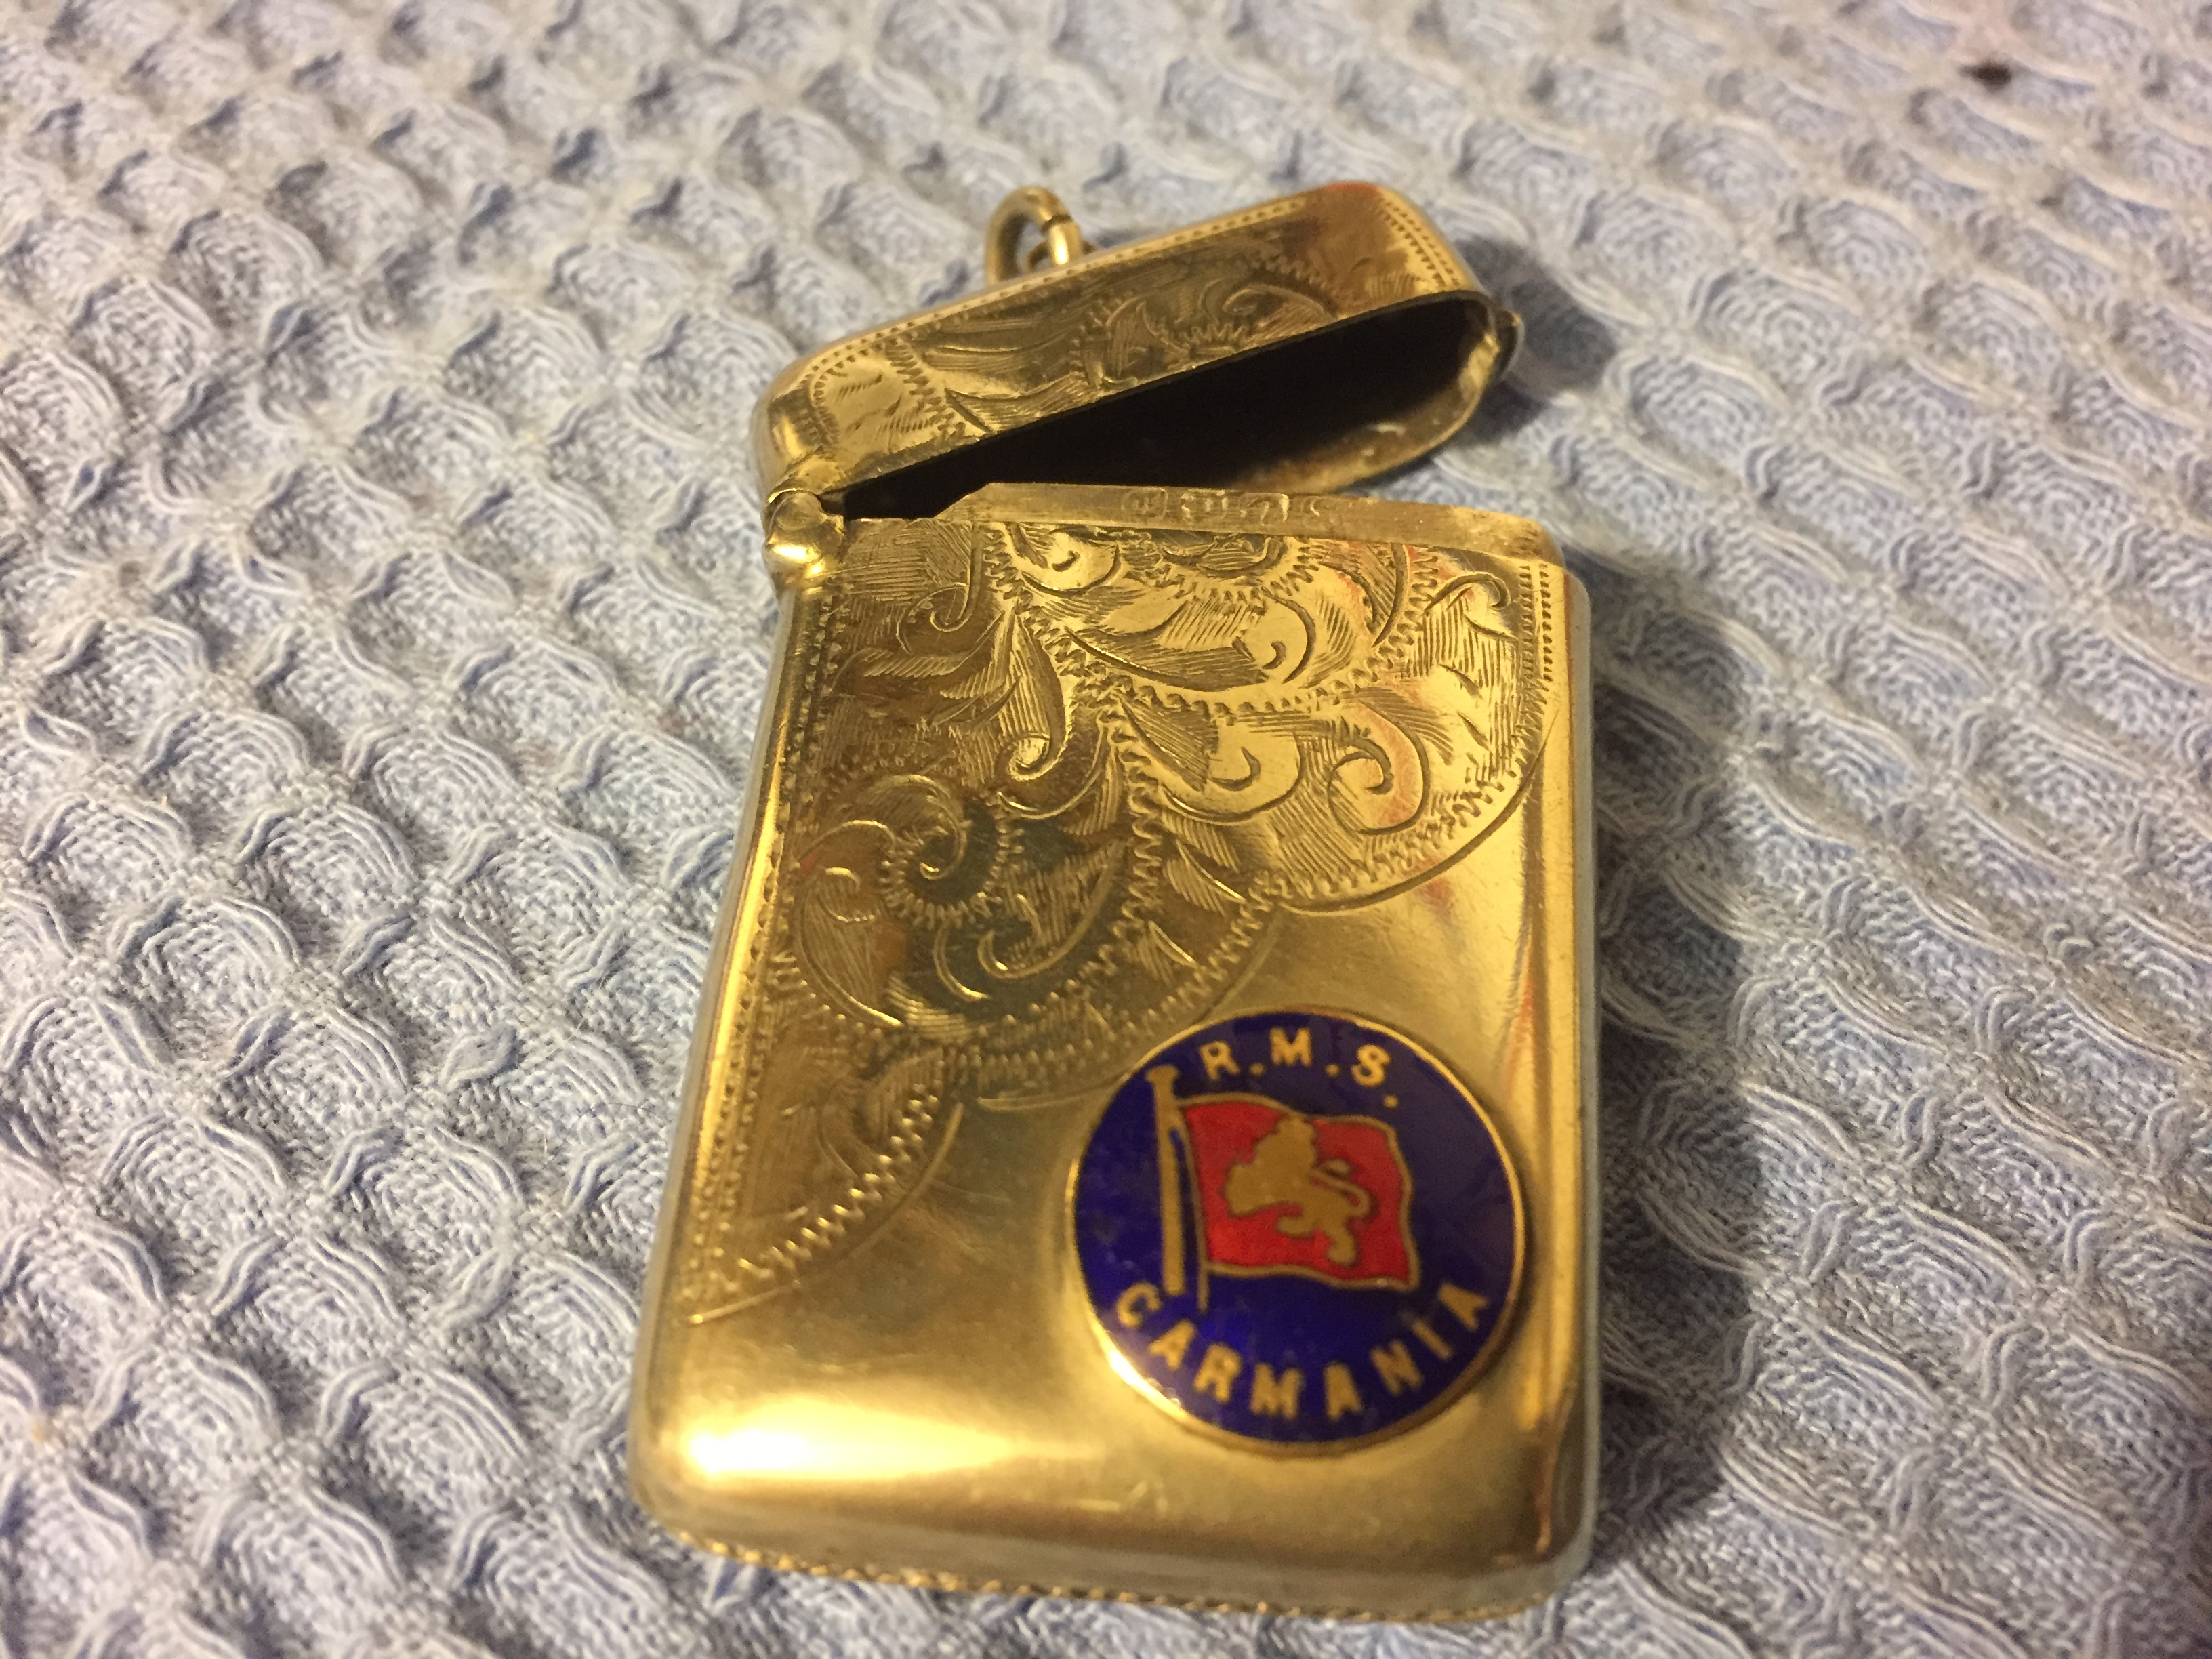 EXTREMELY RARE TO FIND MATCH CASE FROM THE CUNARD LINE VESSEL THE RMS CARMANIA